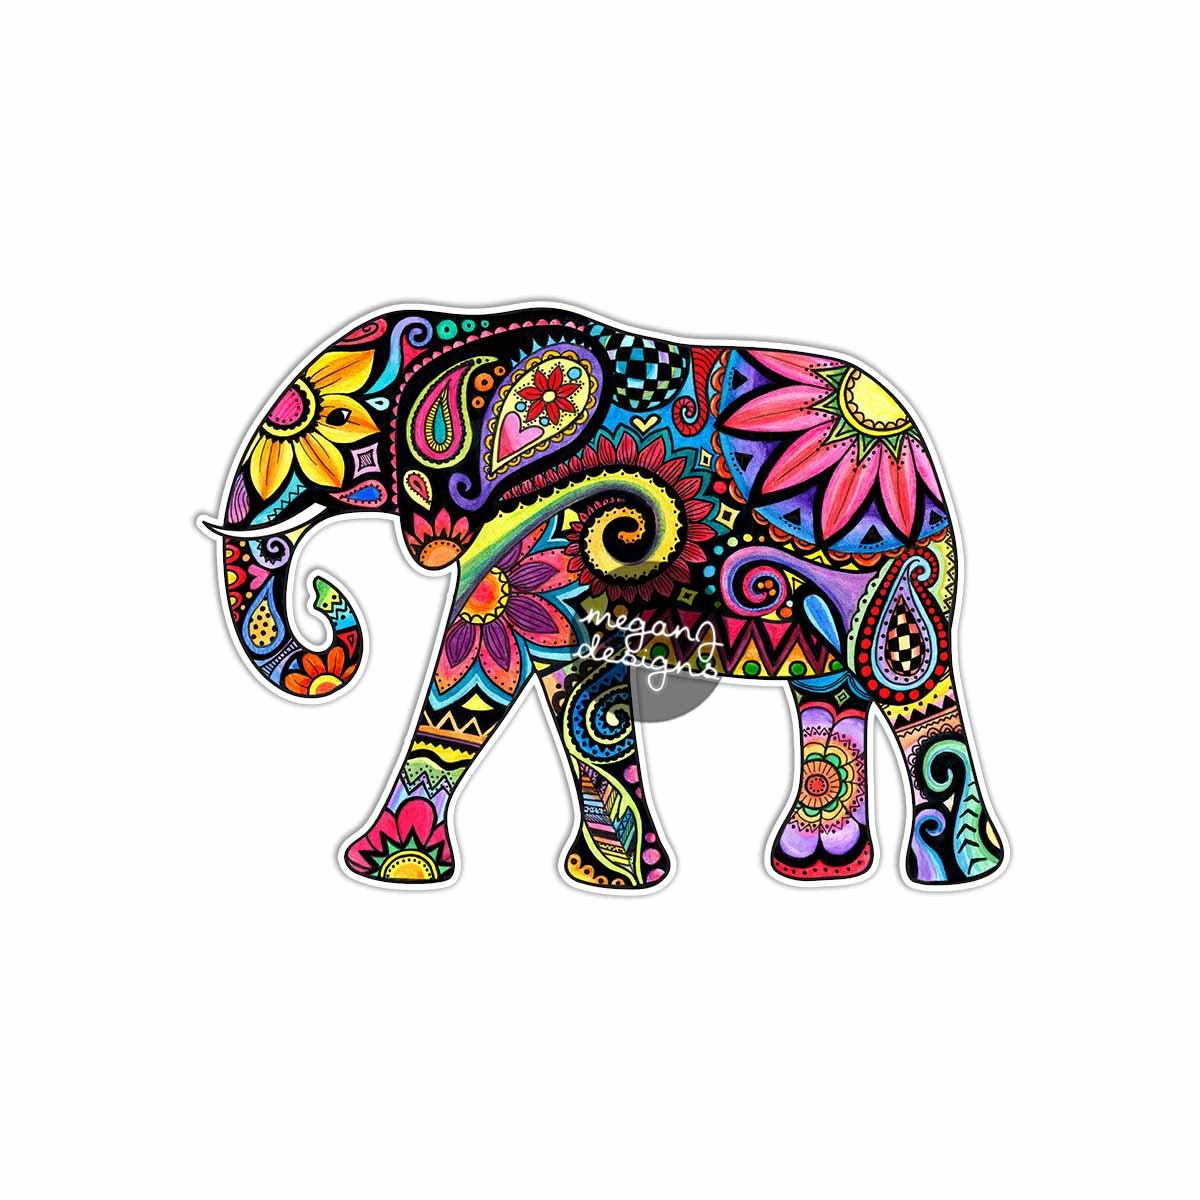 Eye Wall Stickers Elephant Car Decal Colorful Design Bumper Sticker Laptop Decal